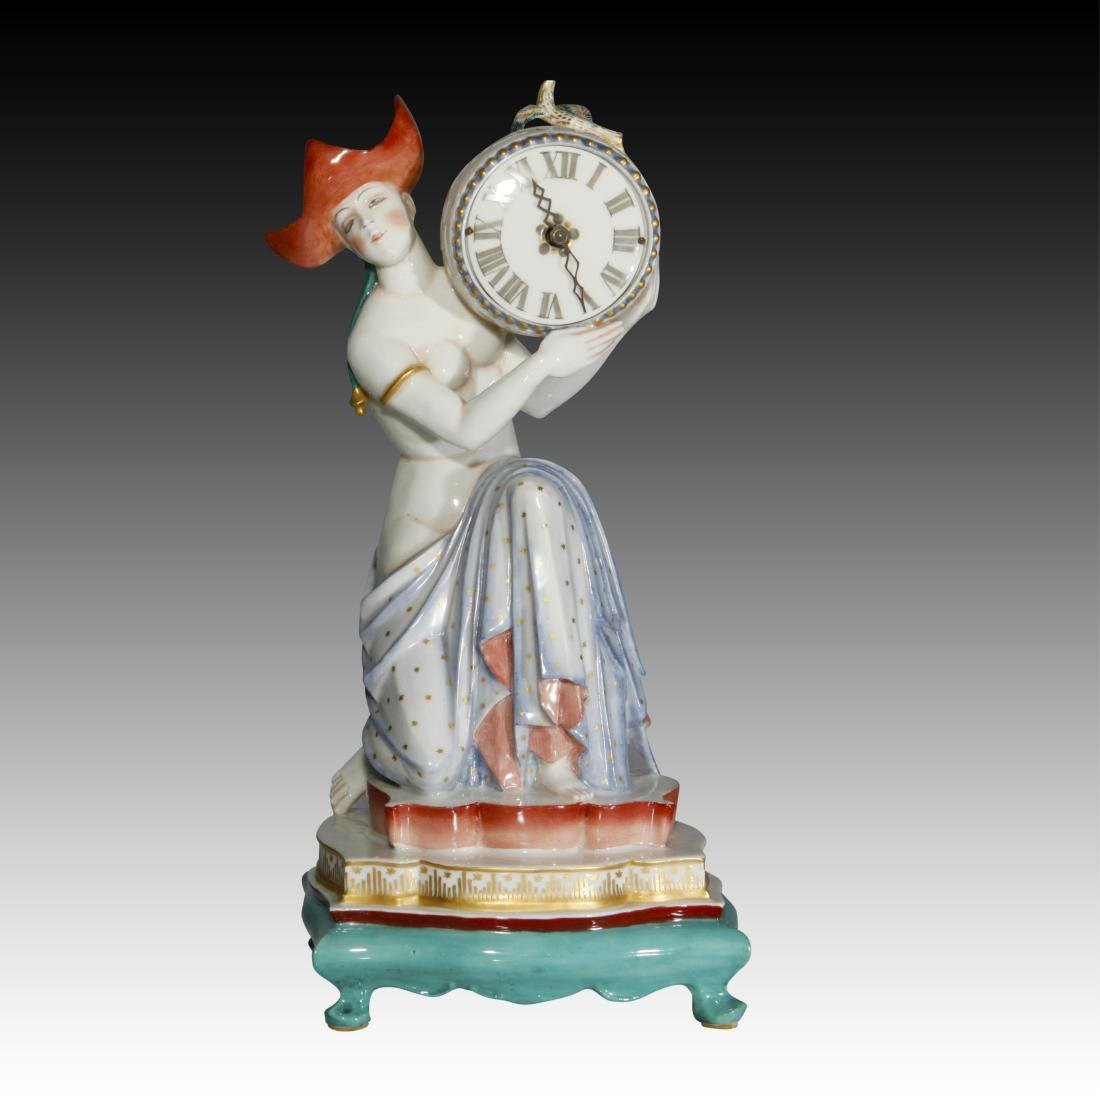 Female Semi-nude Figurine carrying a Clock